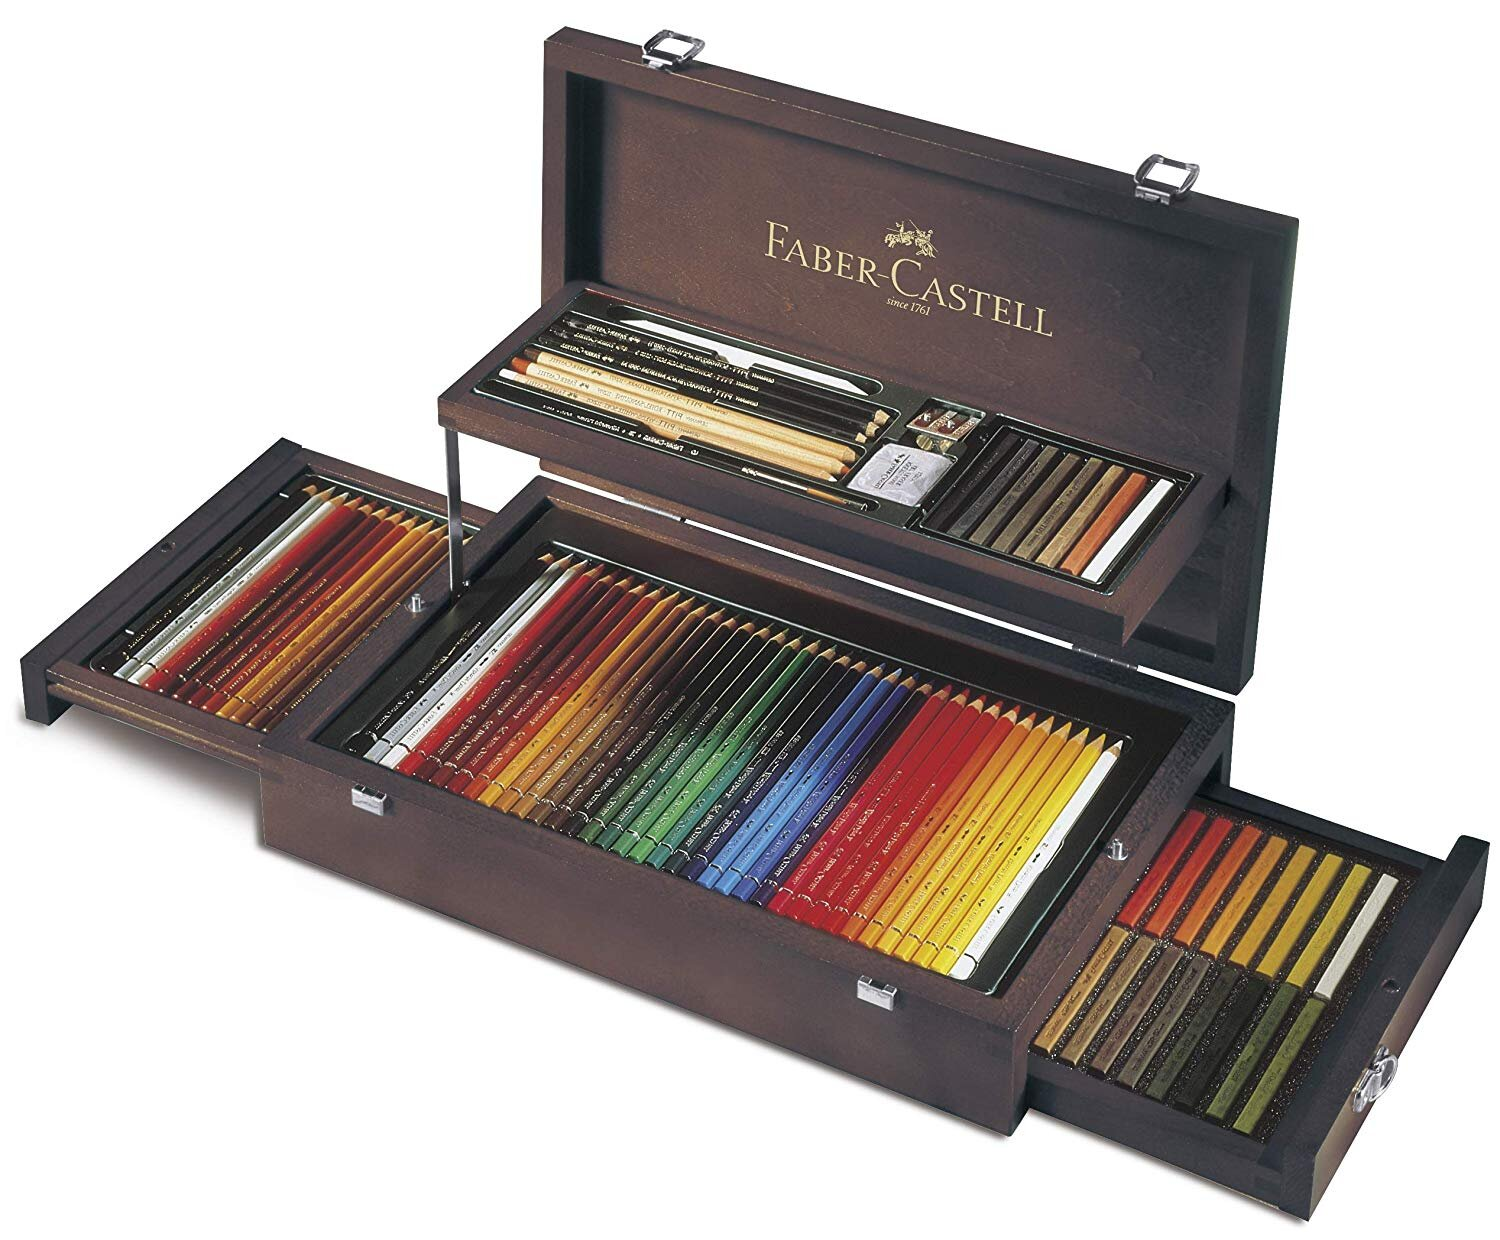 Faber Castell Art and Graphic Collection .jpg